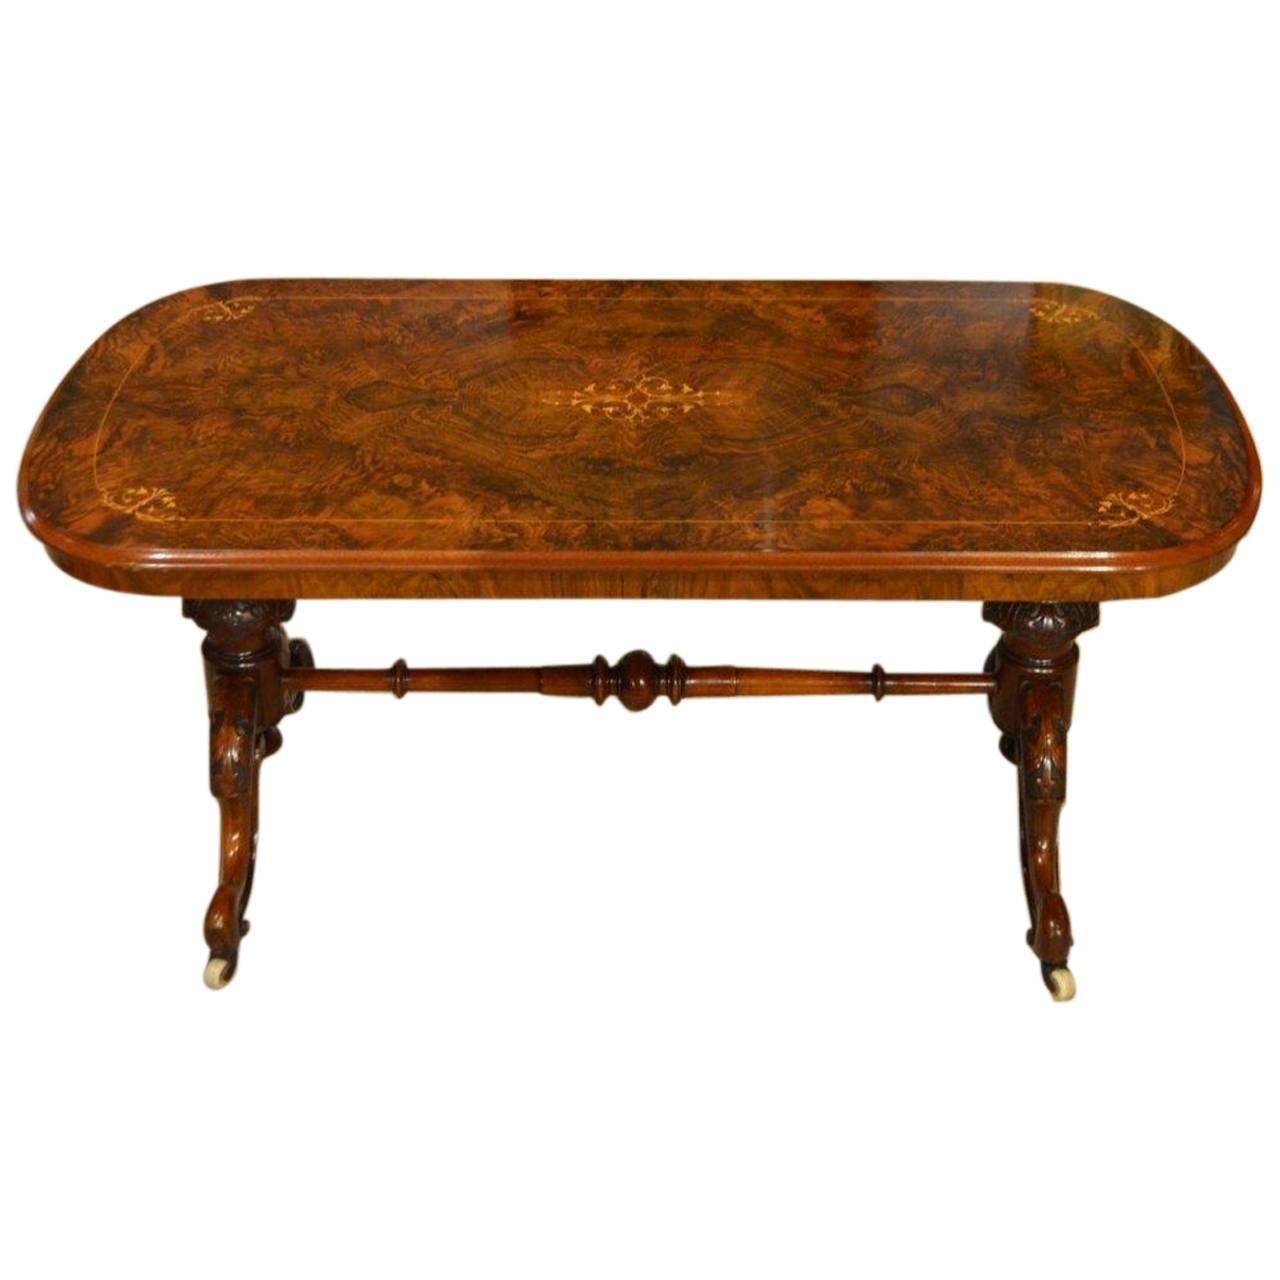 A burr walnut and marquetry inlaid victorian period antique coffee table at 1stdibs Coffee table antique